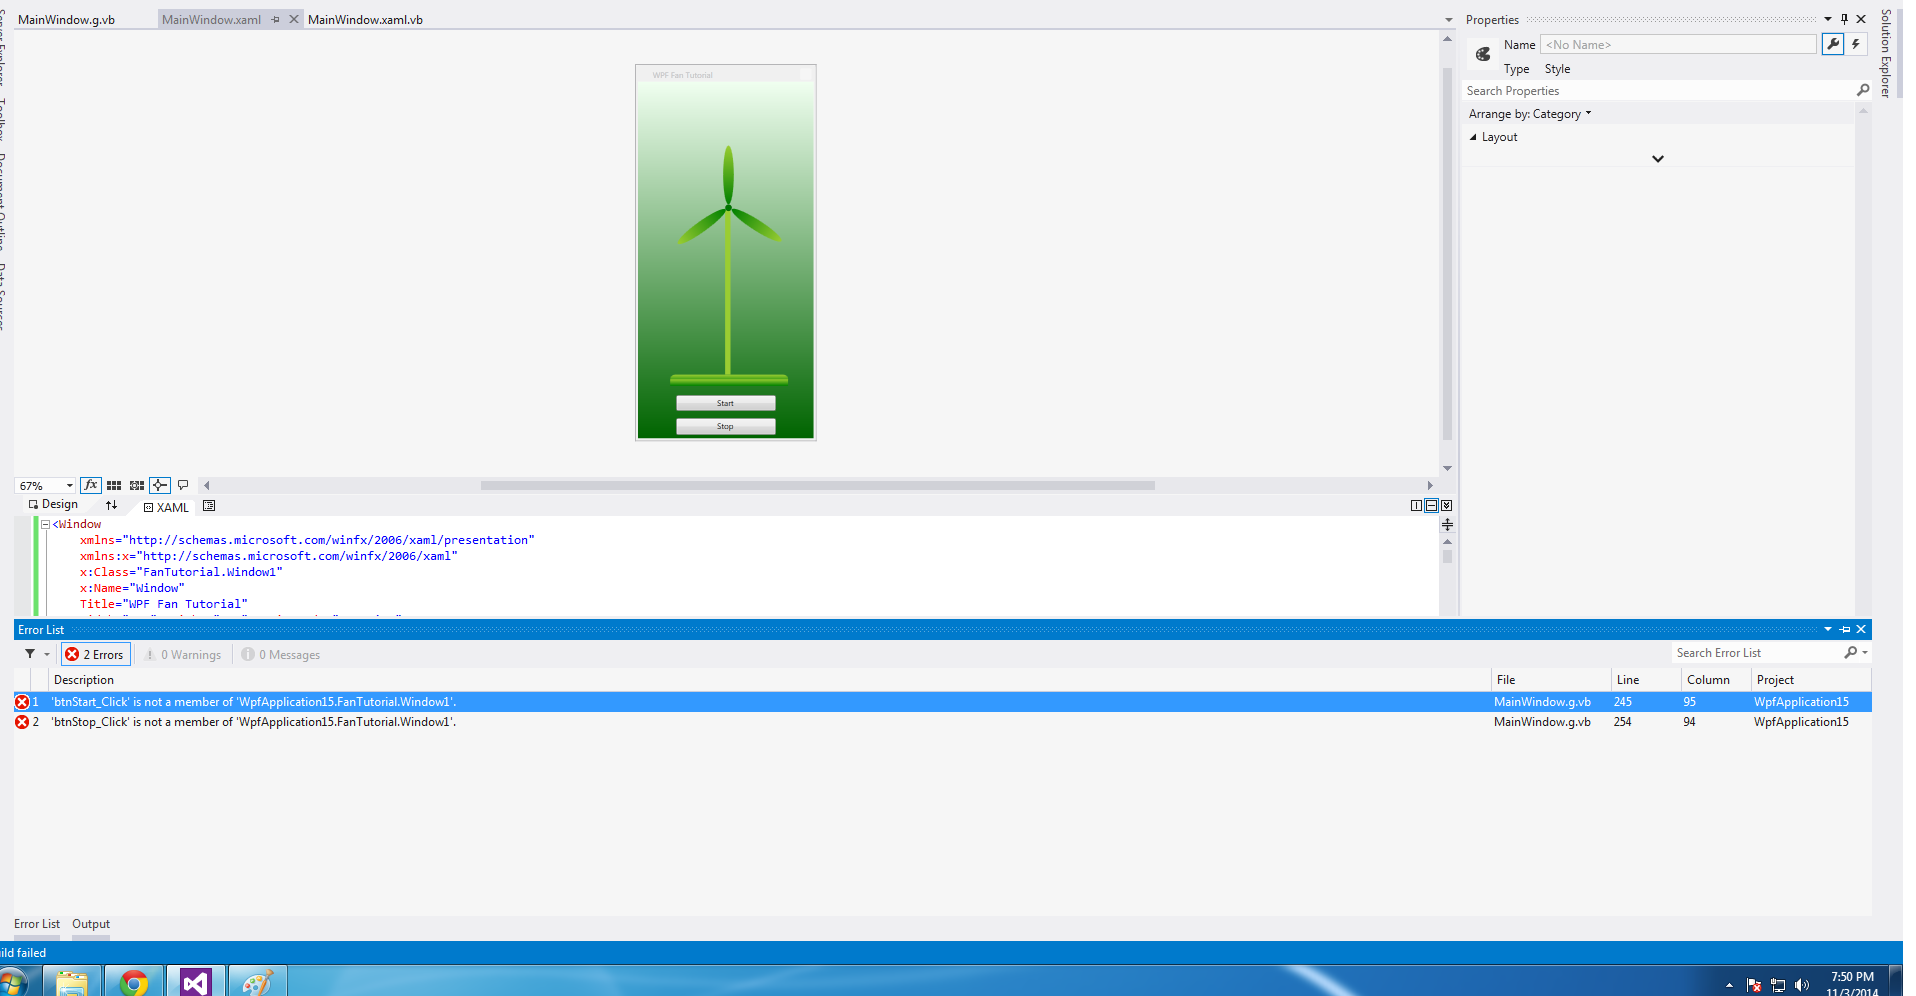 Start and stop a fan image with a button in wpf sir it causes some errors i have attached the image baditri Gallery